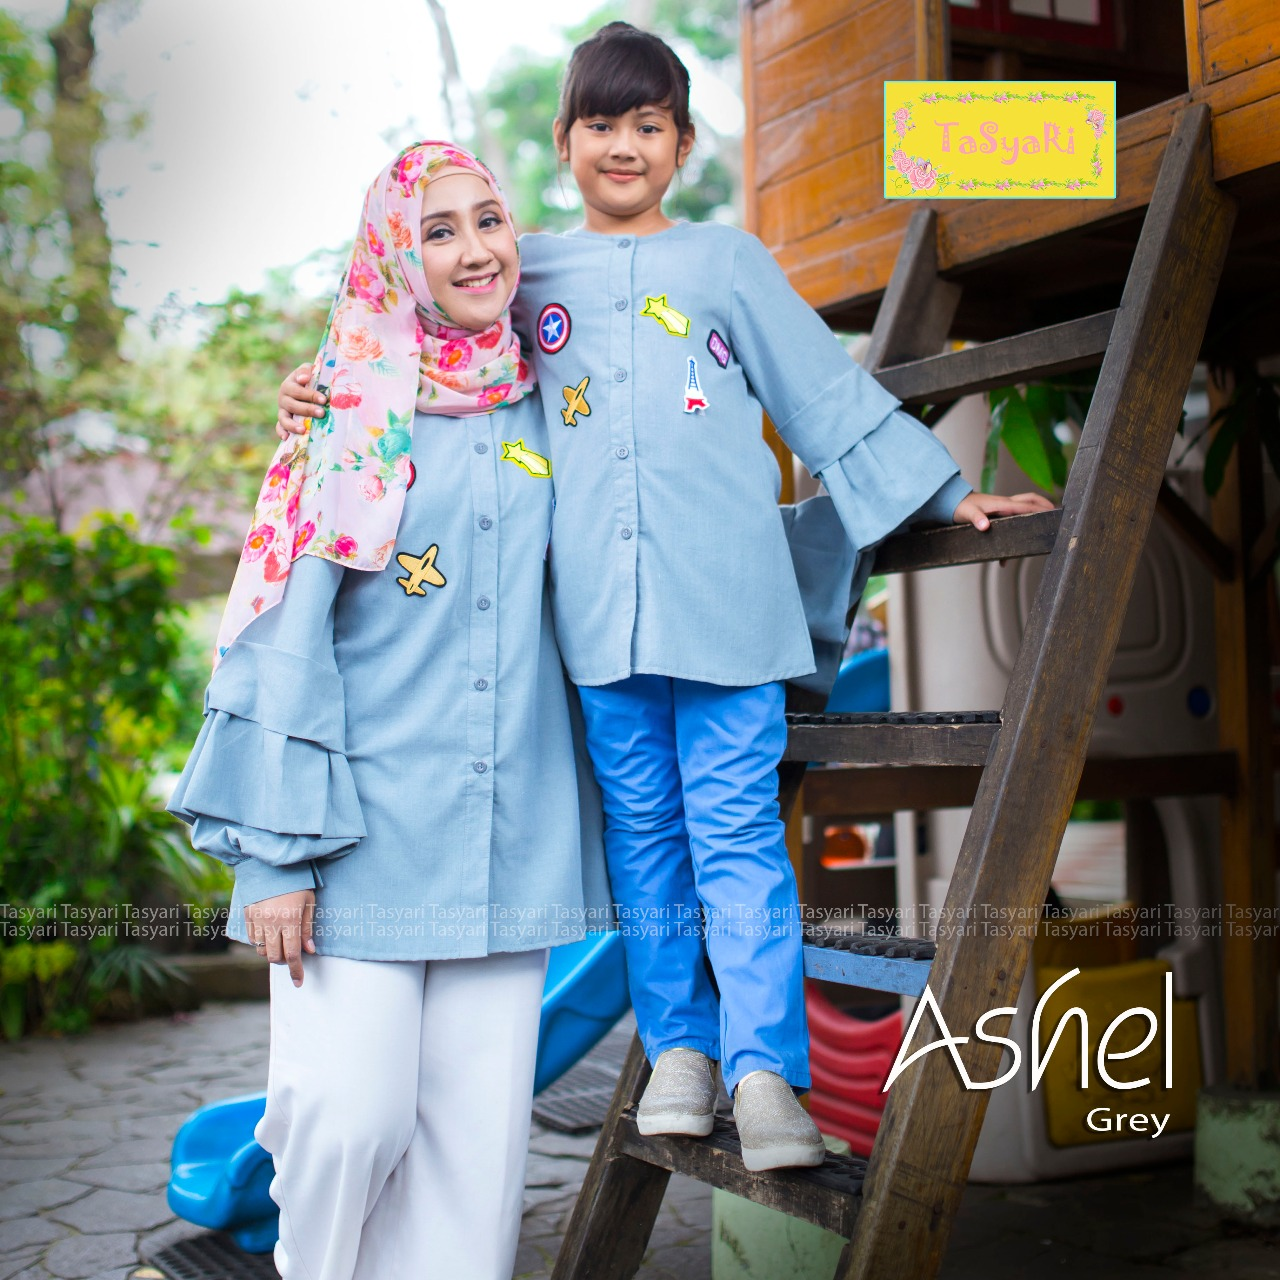 Jual baju muslim, model gamis couple, busana muslim ashel by tasyari grey